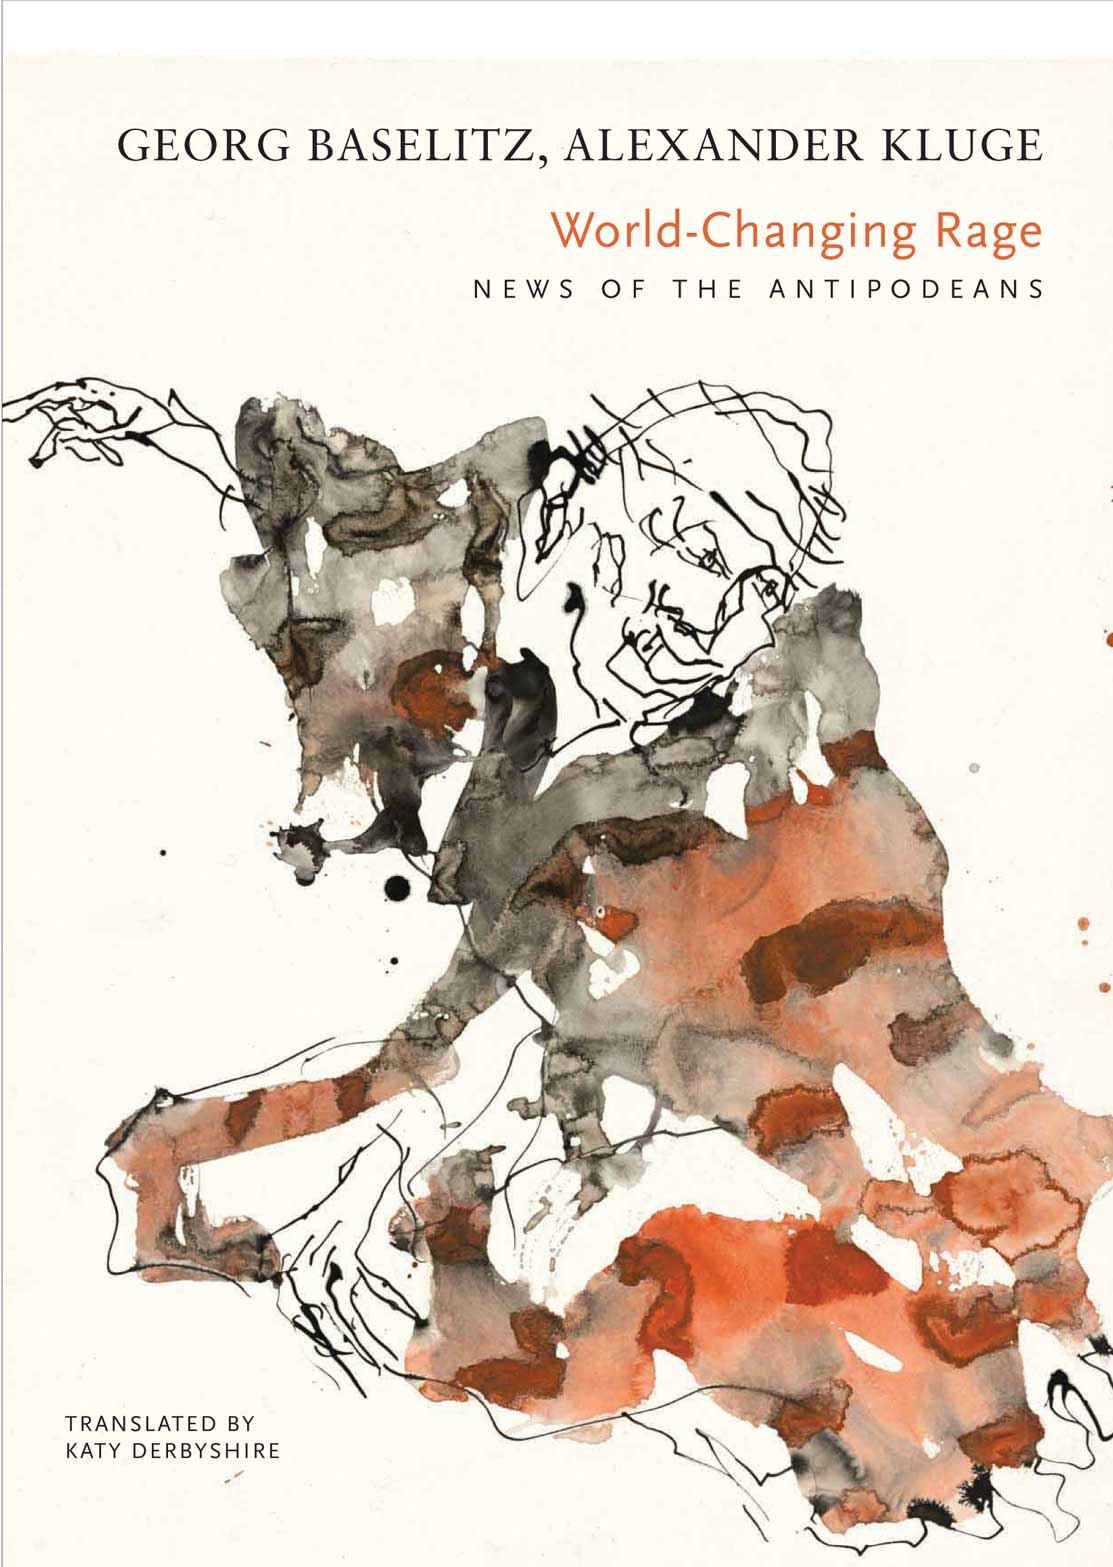 World-Changing Rage : News of the Antipodeans by Alexander Kluge, Georg Baselitz  | Seagull Books